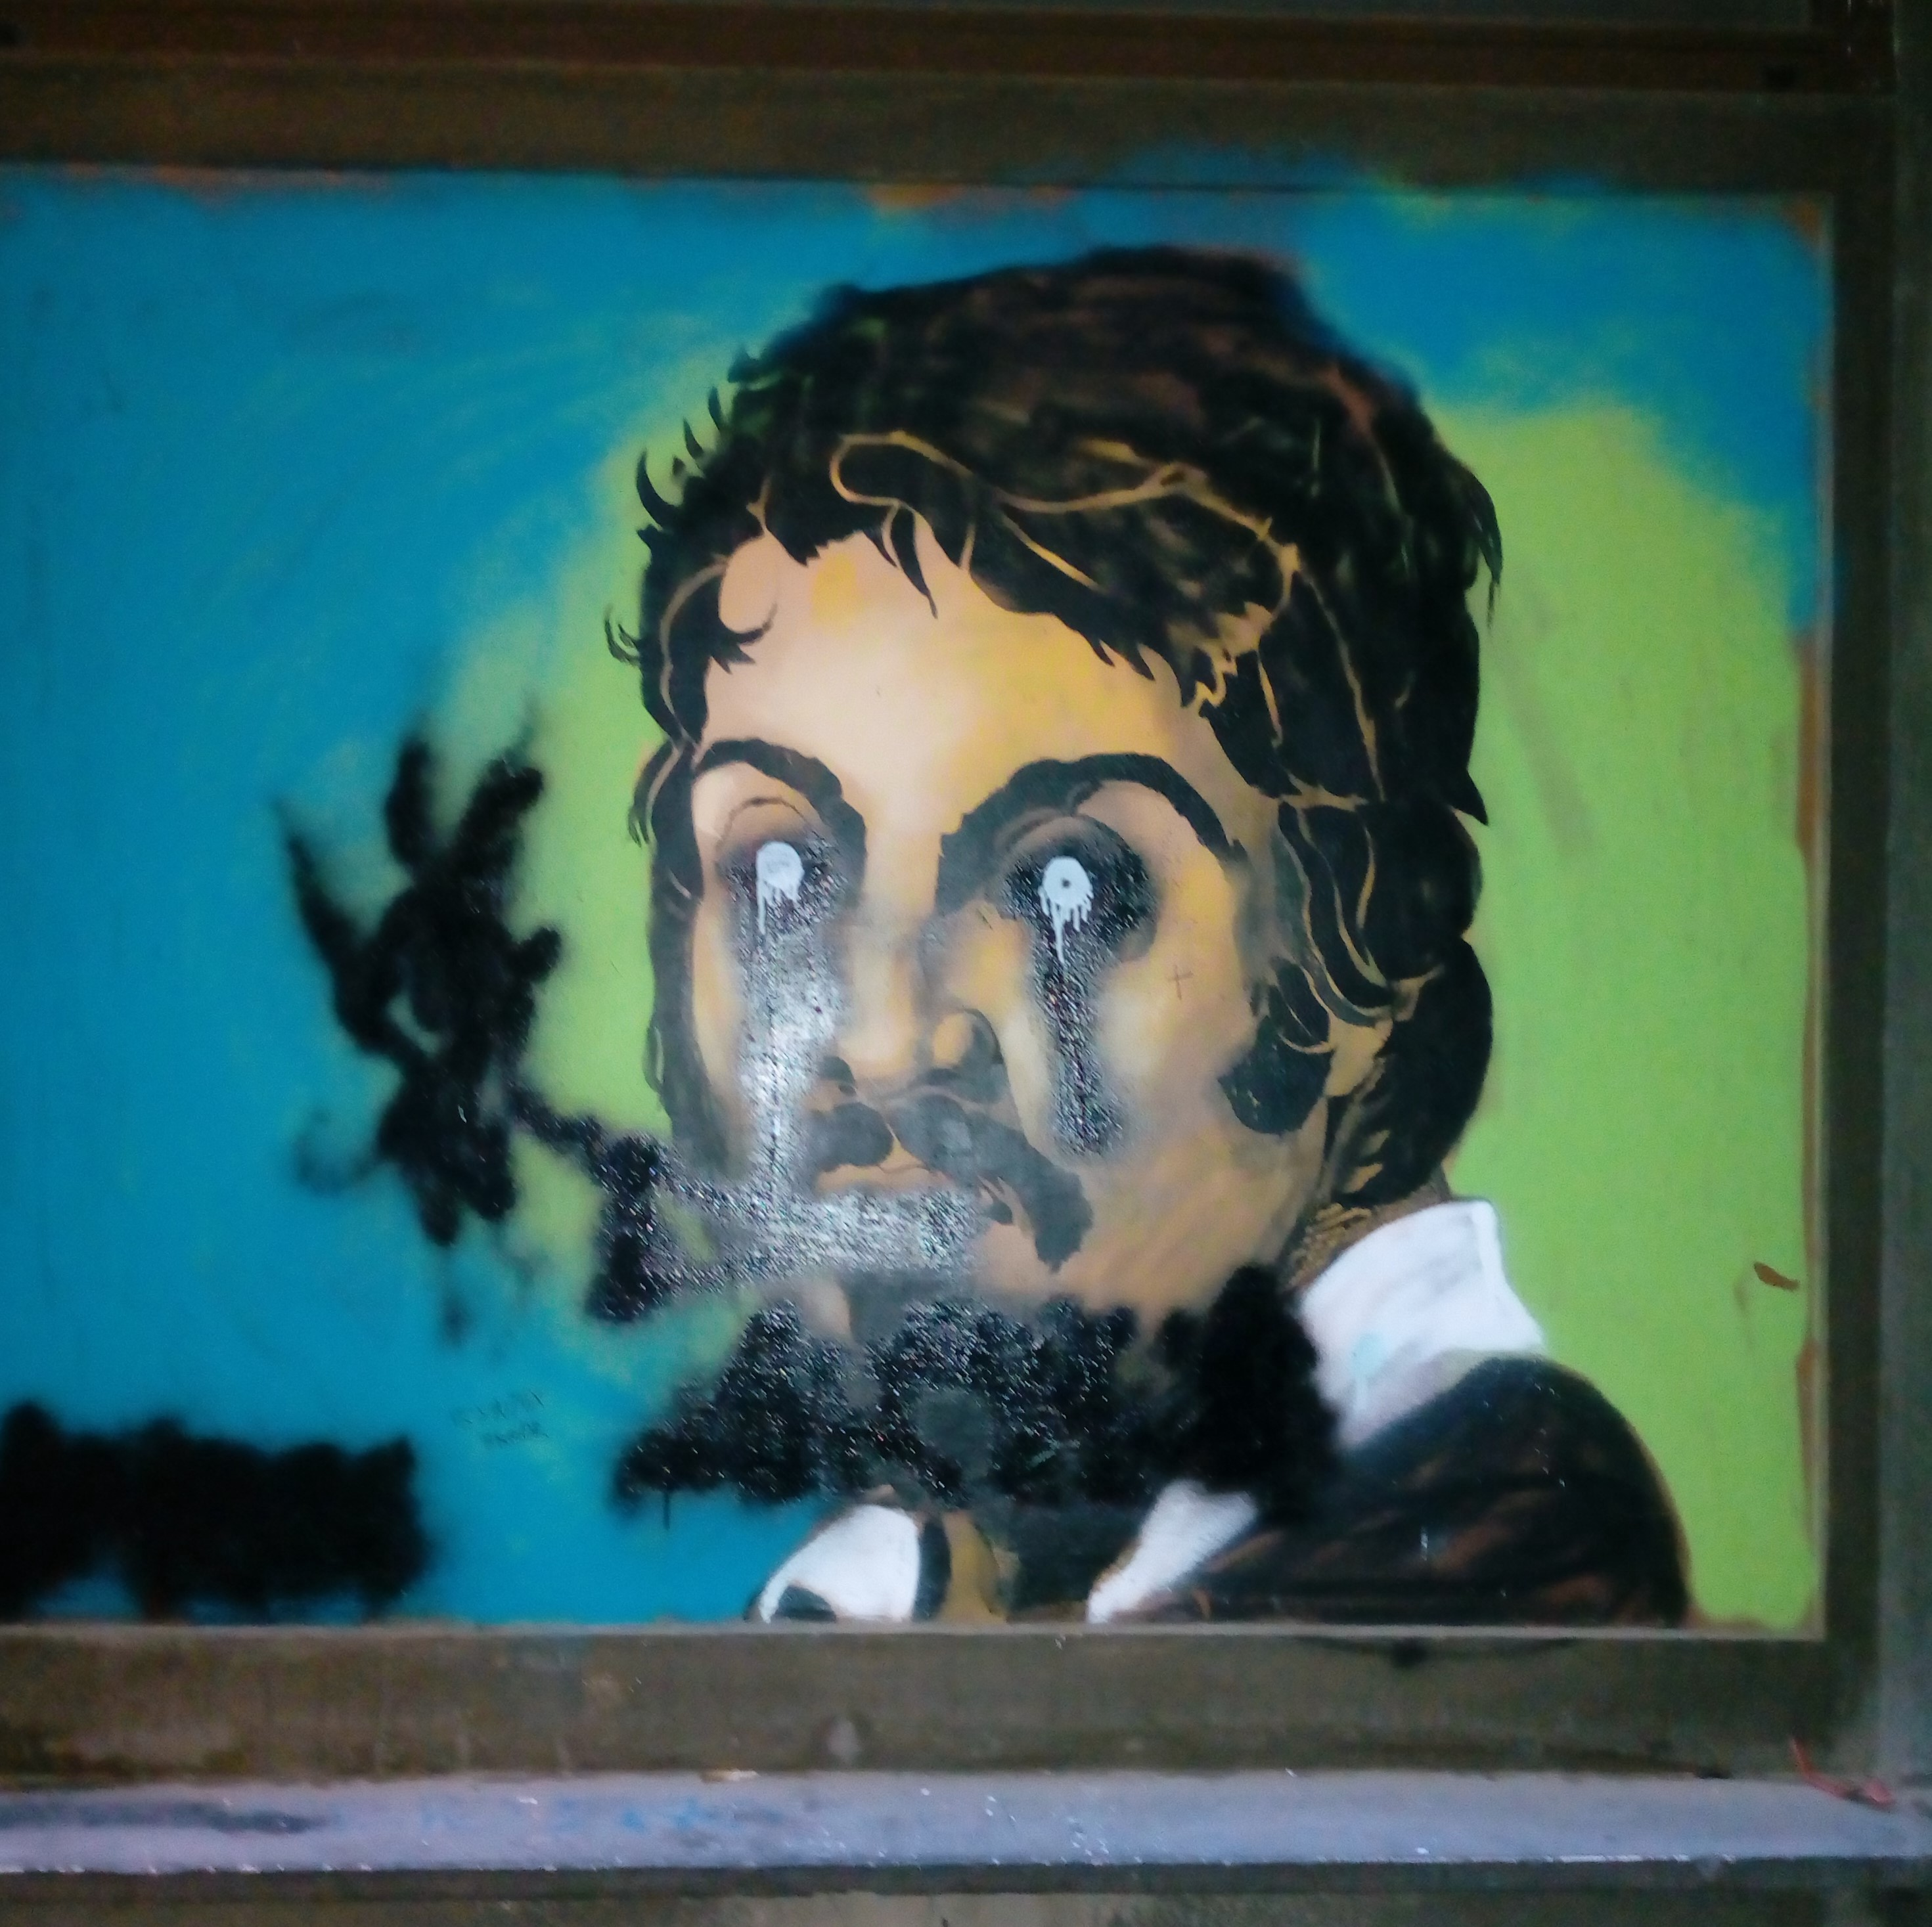 Diary from Roma, Italy: Caravaggio's painting studio and its secret. Street art tribute